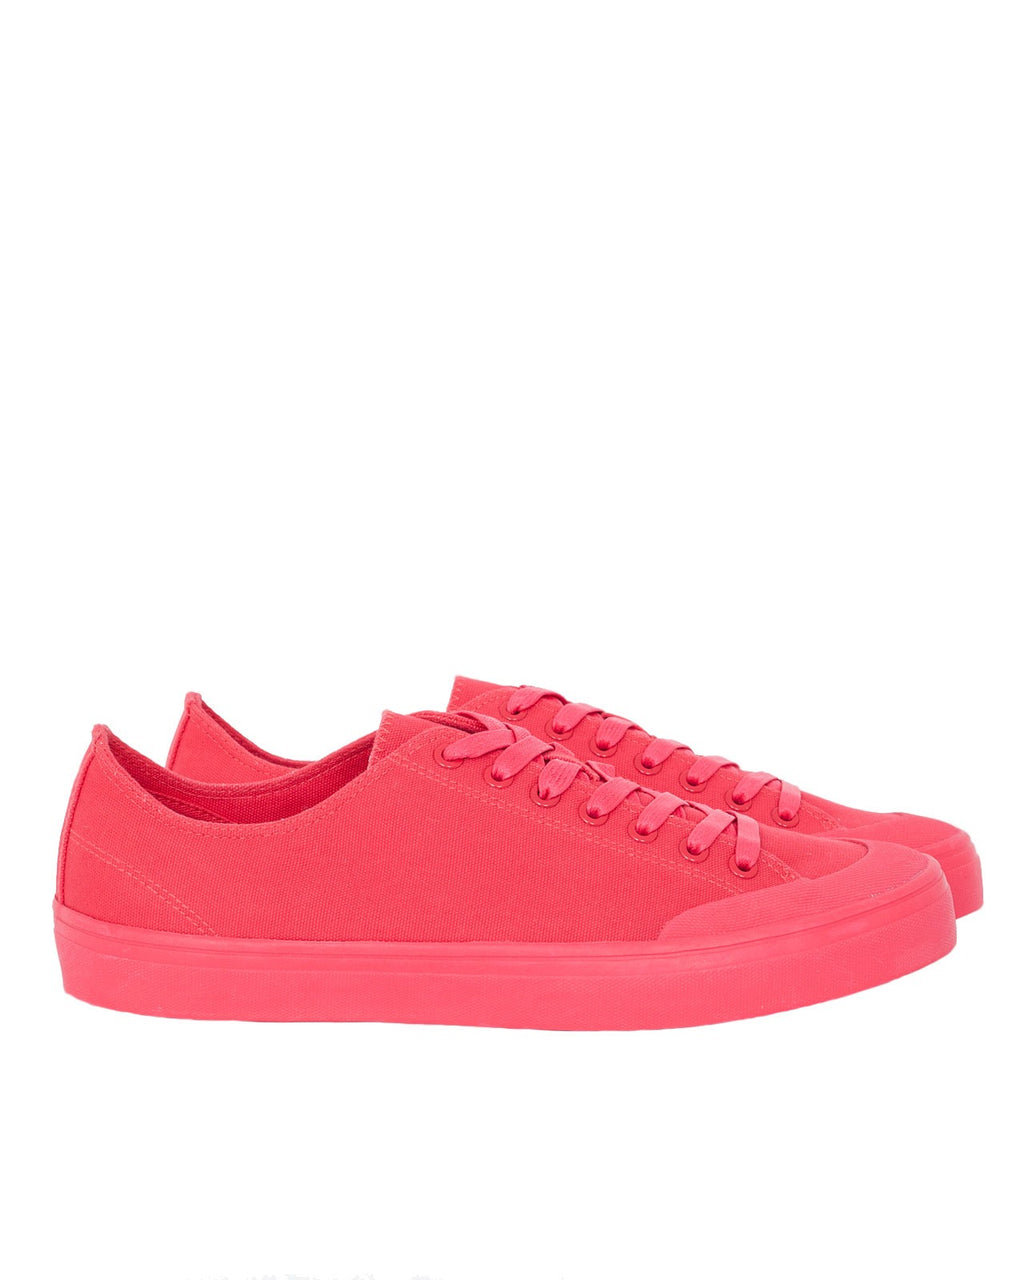 Erik Schedin Canvas Sneaker, Red